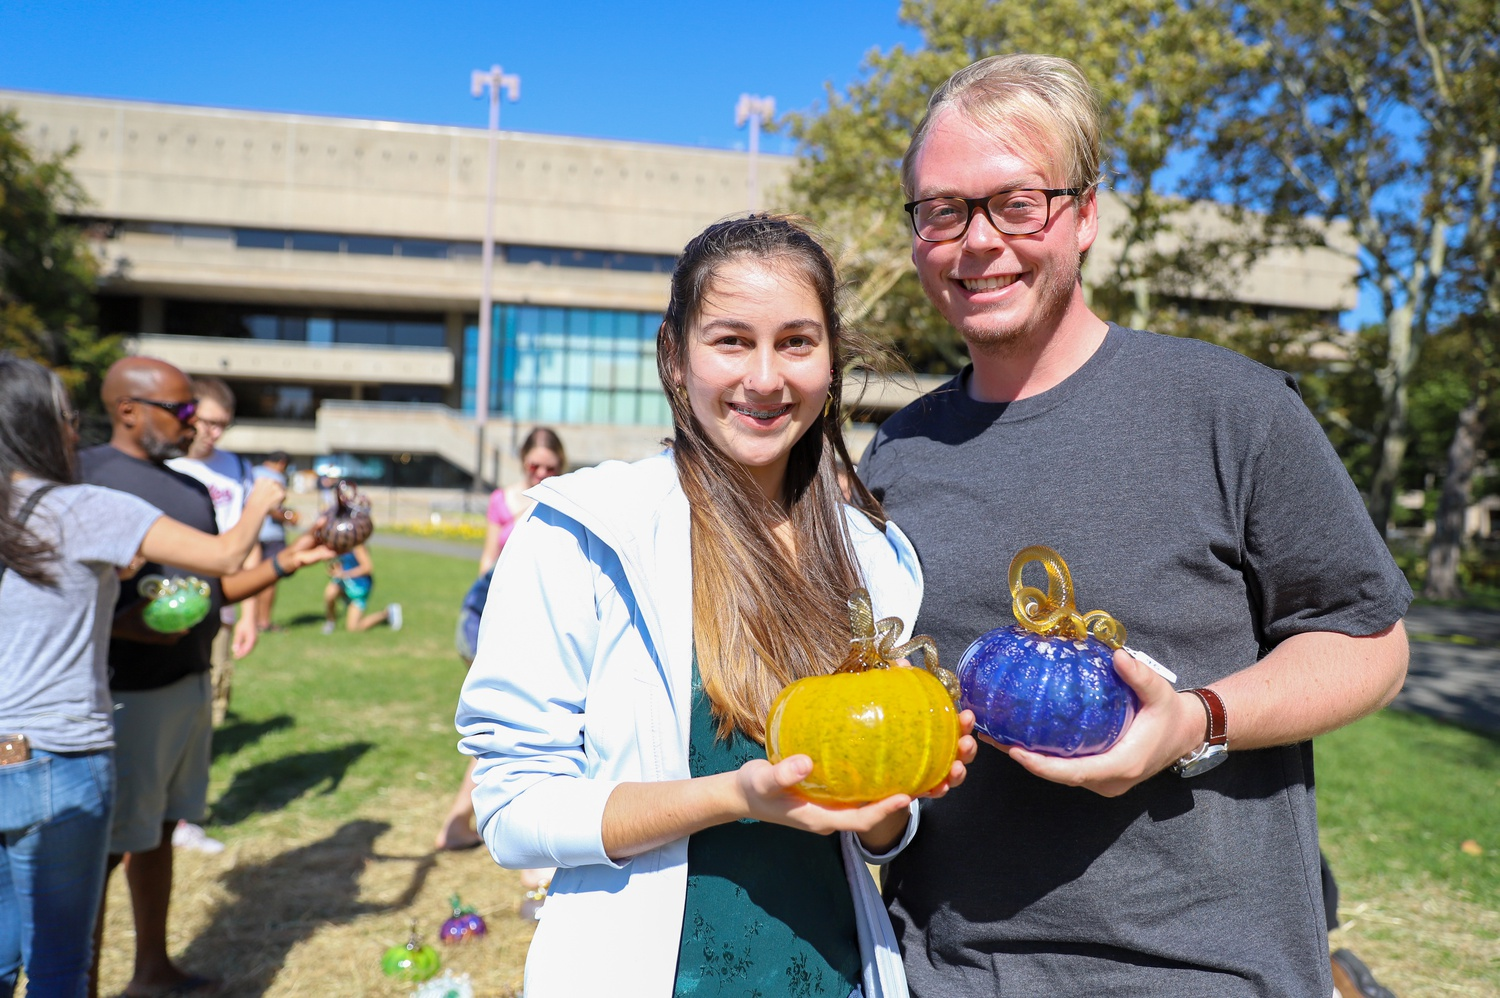 William B. Dahl and Melina P. Torres, PhD students of Molecular and Cellular Biology at Brandeis University, attended the event for the first time.